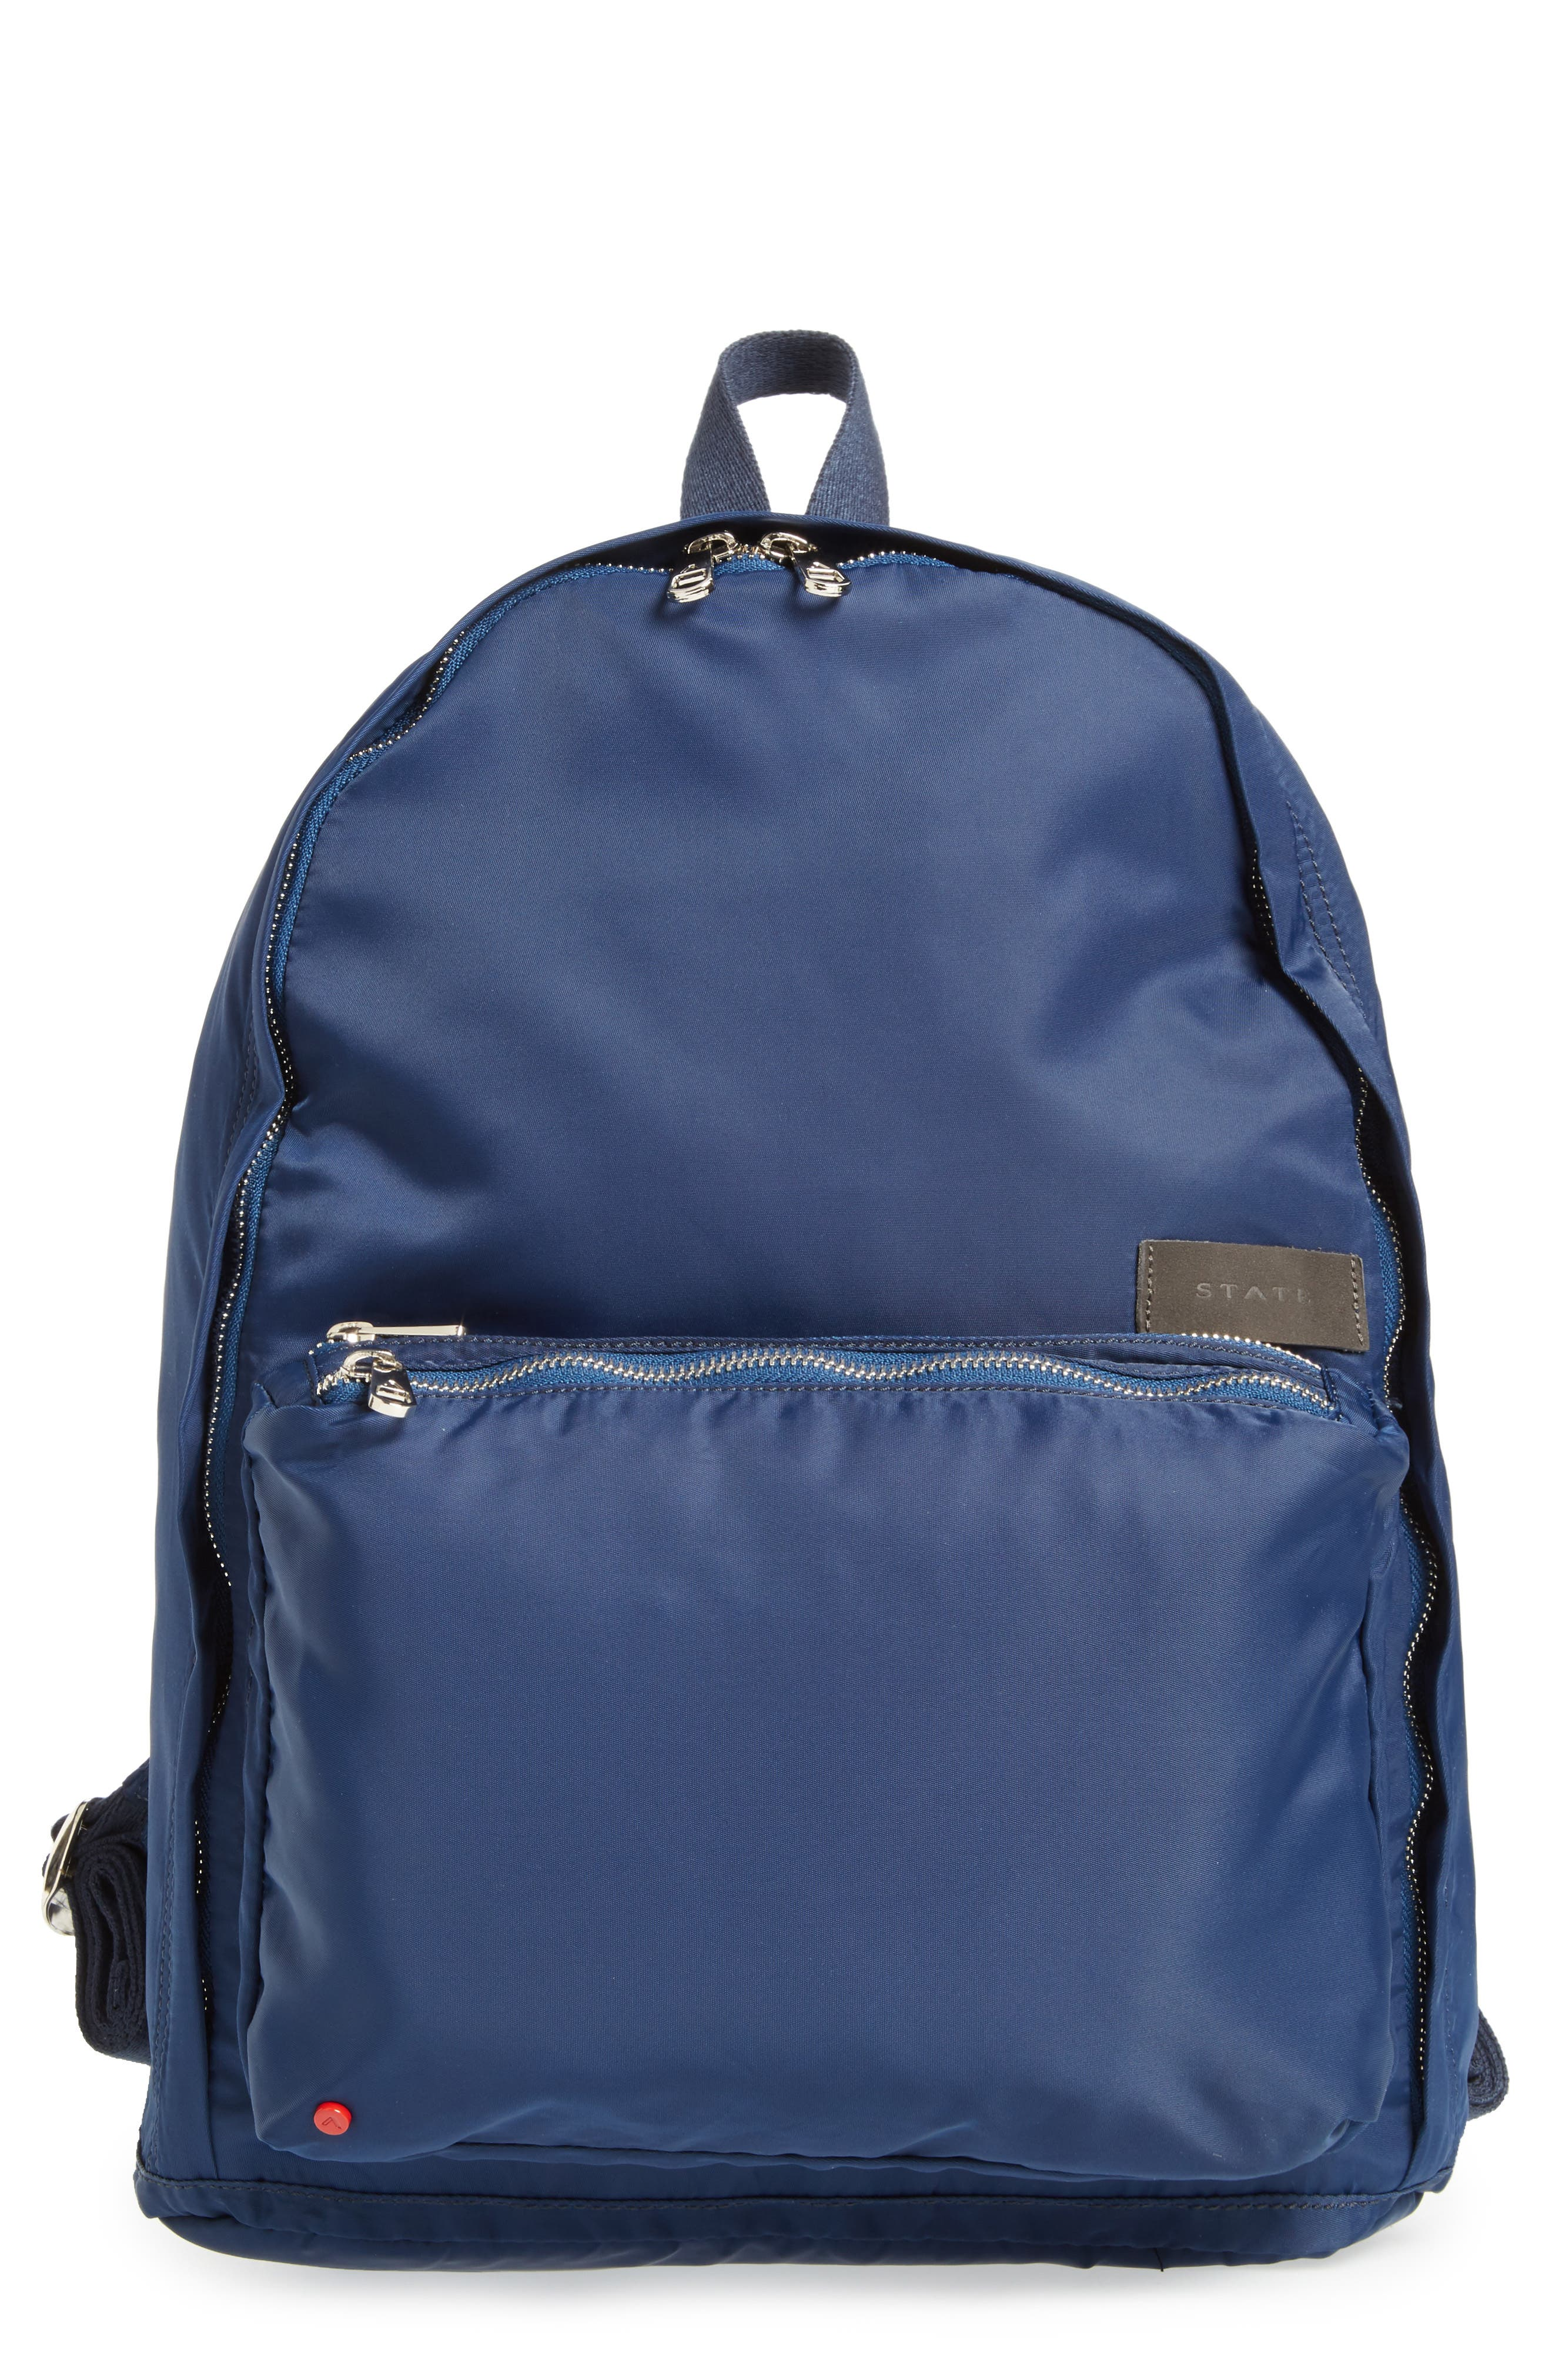 State Bags The Heights Lorimer Backpack - Blue